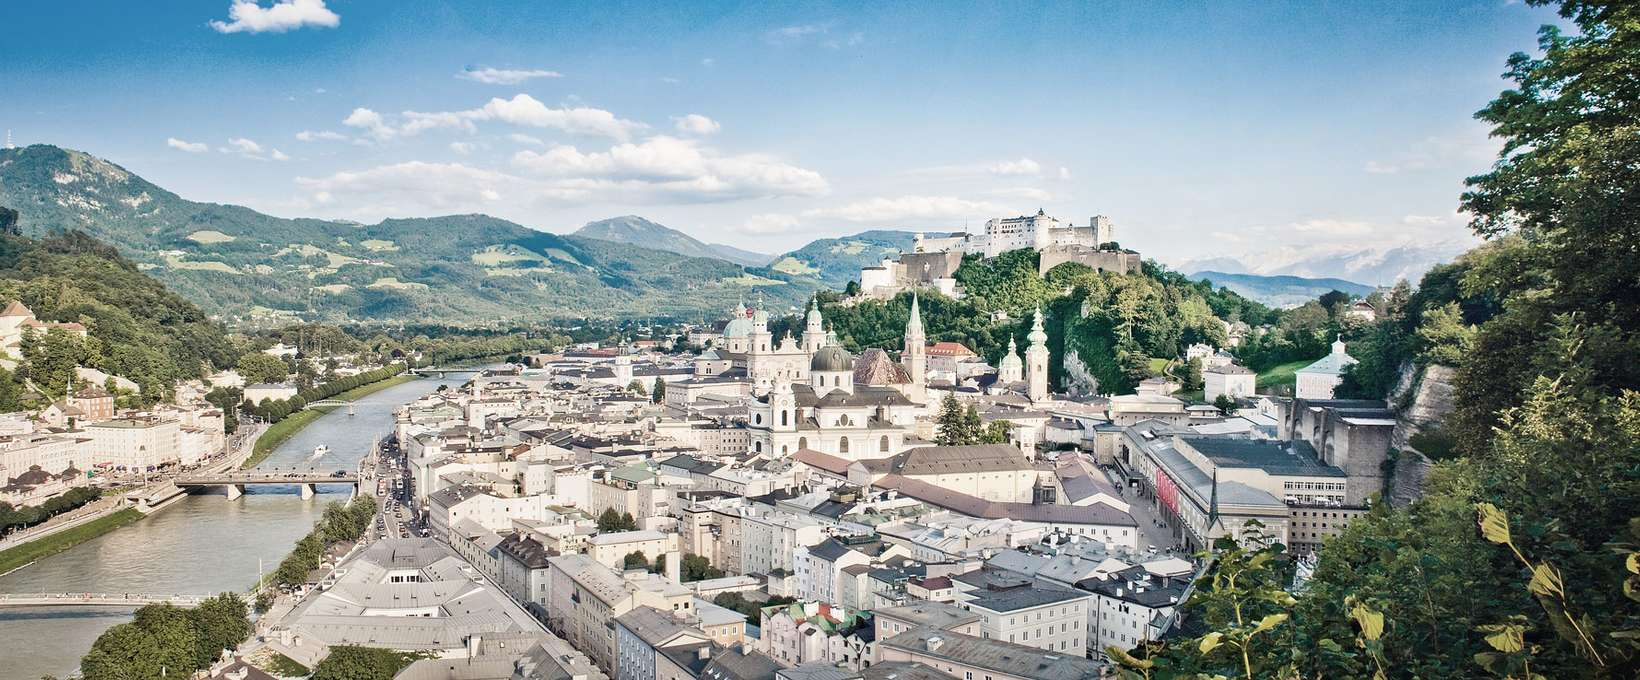 Panorama over the city | Salzburg